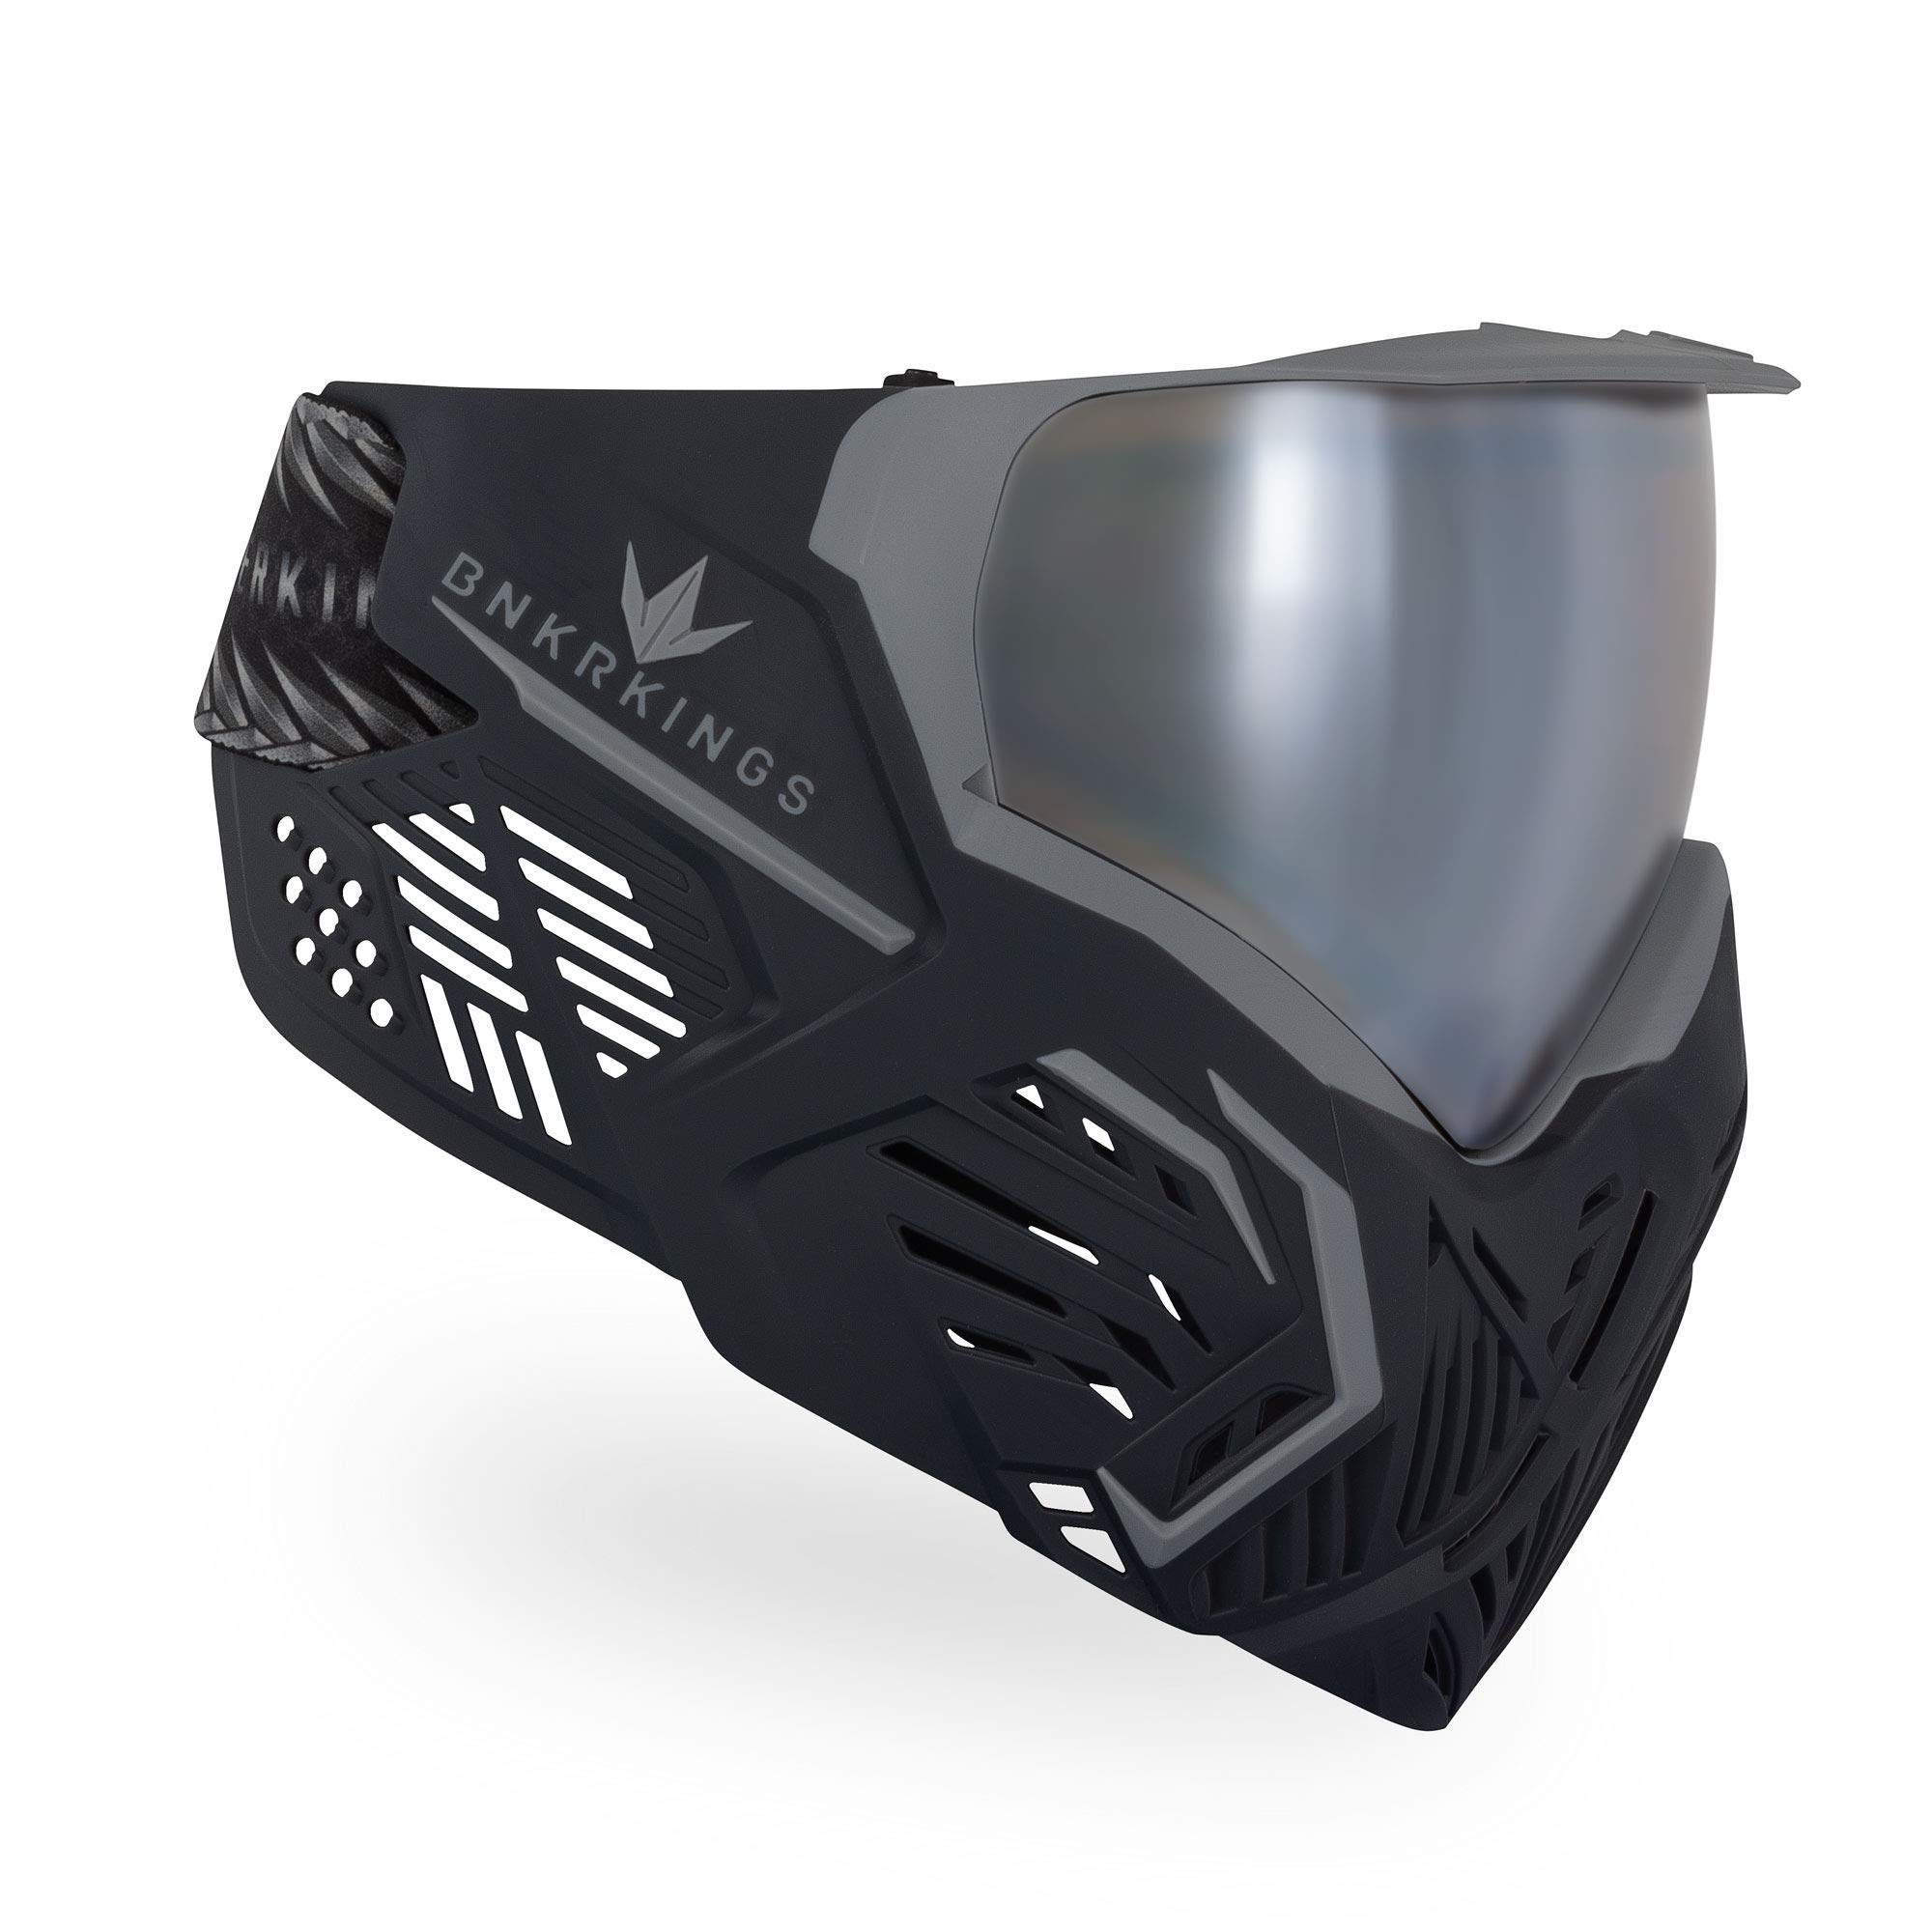 Bunker Kings CMD Paintball Goggle/Mask - Black Panther by Bnkr Kings